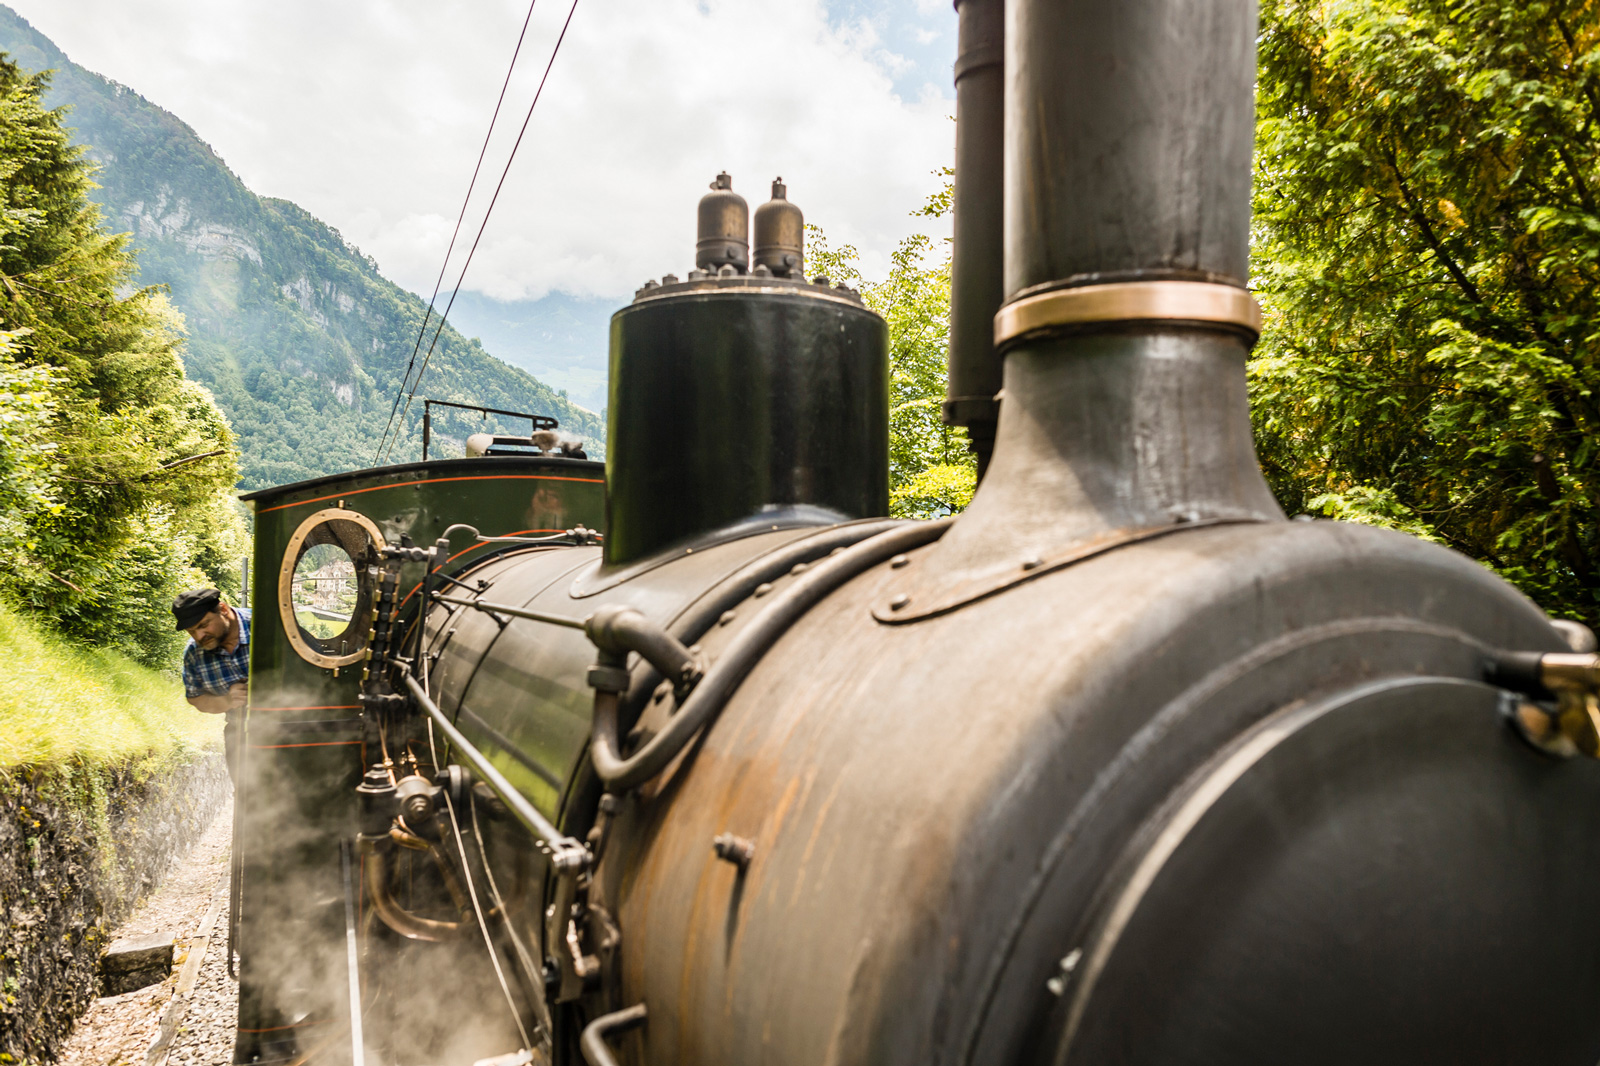 Rigi Steam Engine